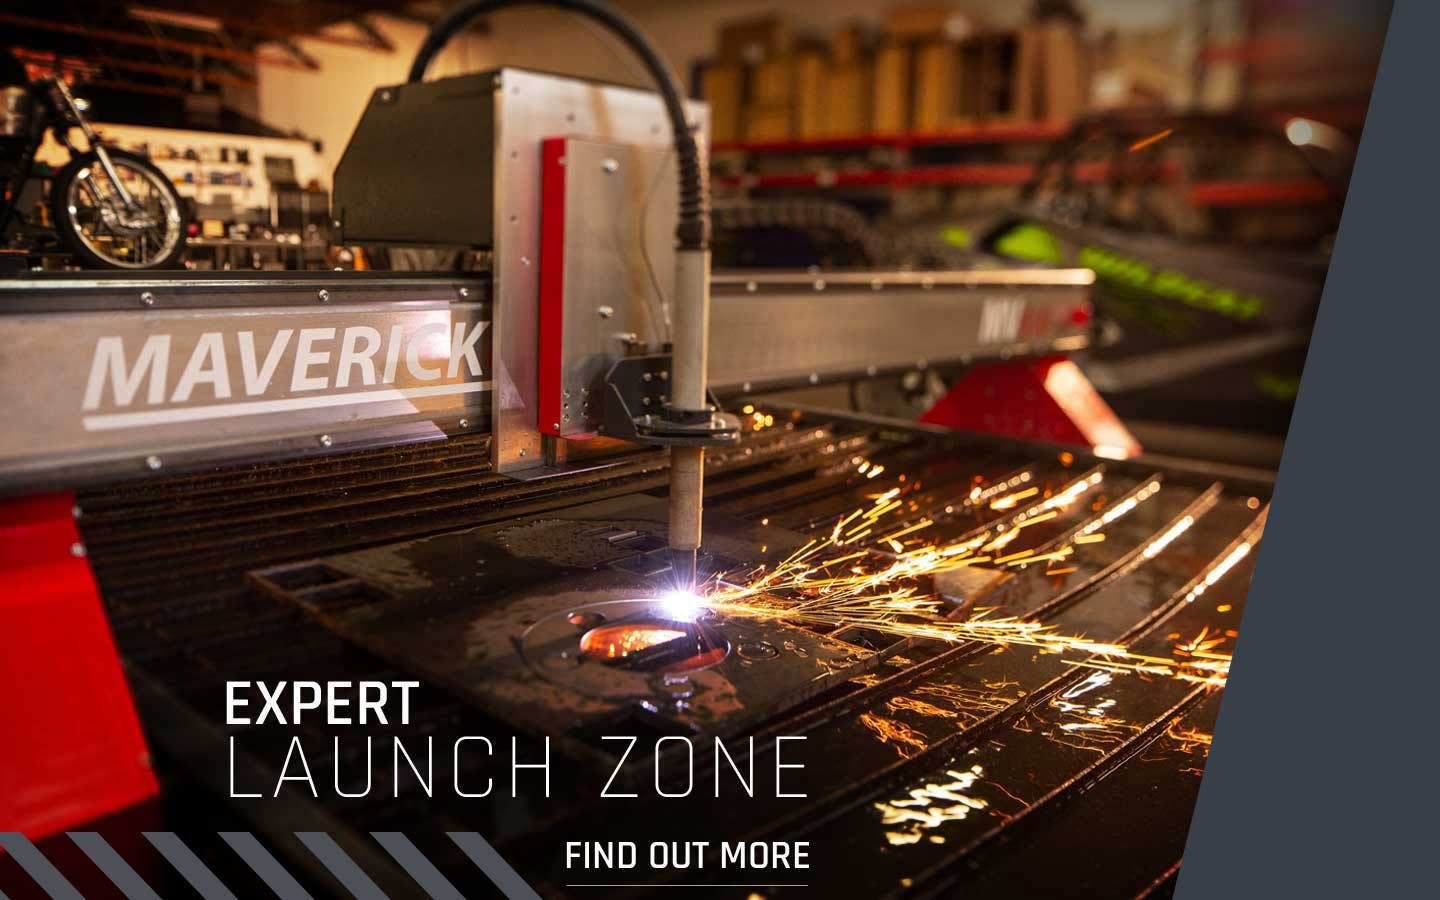 Expert Launch Zone